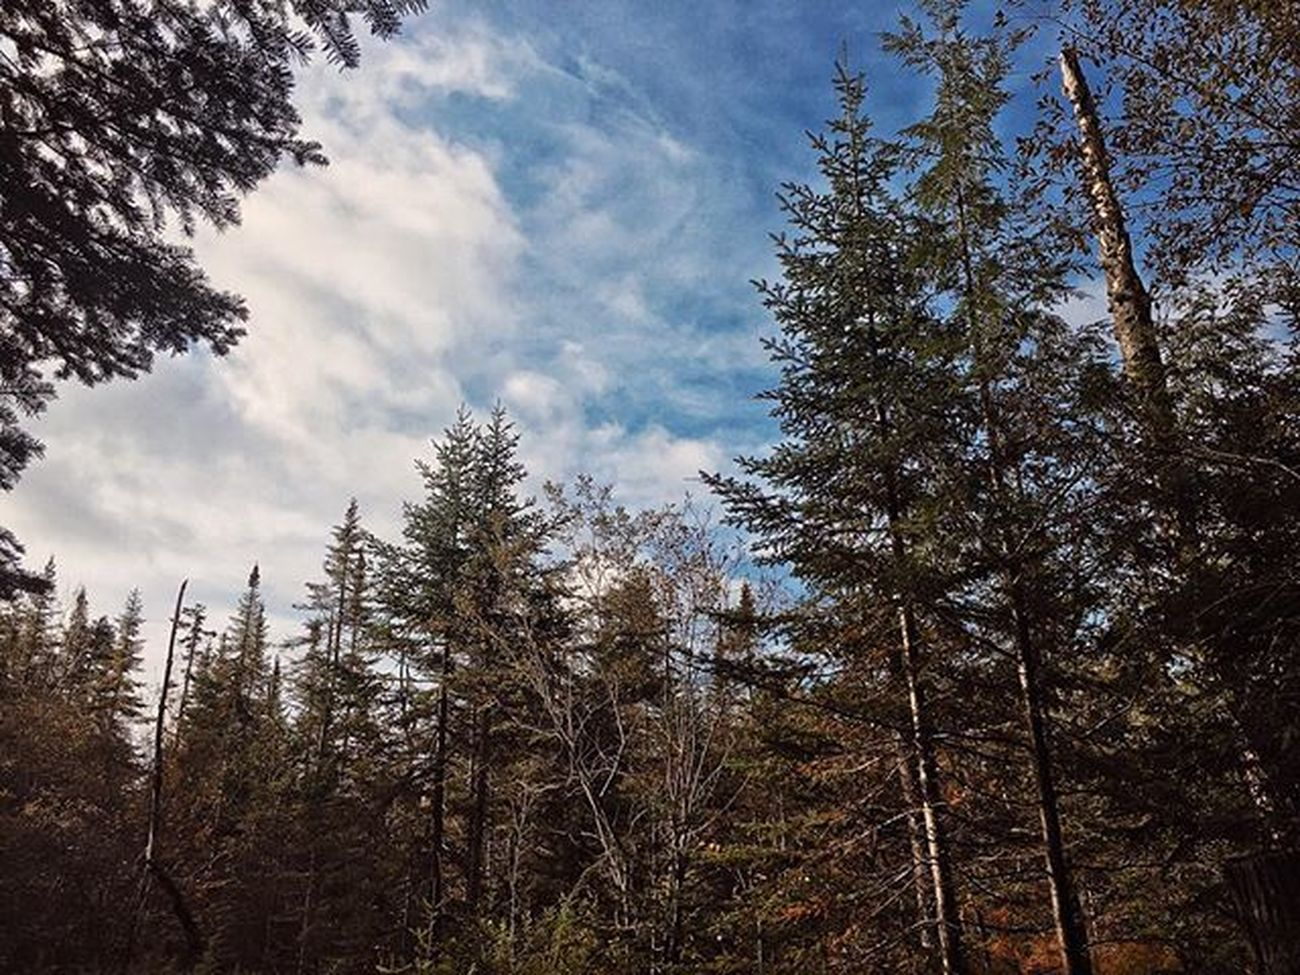 ADK Adirondacks Nature Tree Upstateny NY Mountains Forest Color Pixelpanda Photomasters Clouds Sky Photooftheday IPhoneography Iphone6s Travel Explore Adventure Adkmountains Visitadks Vscocam Snapseed